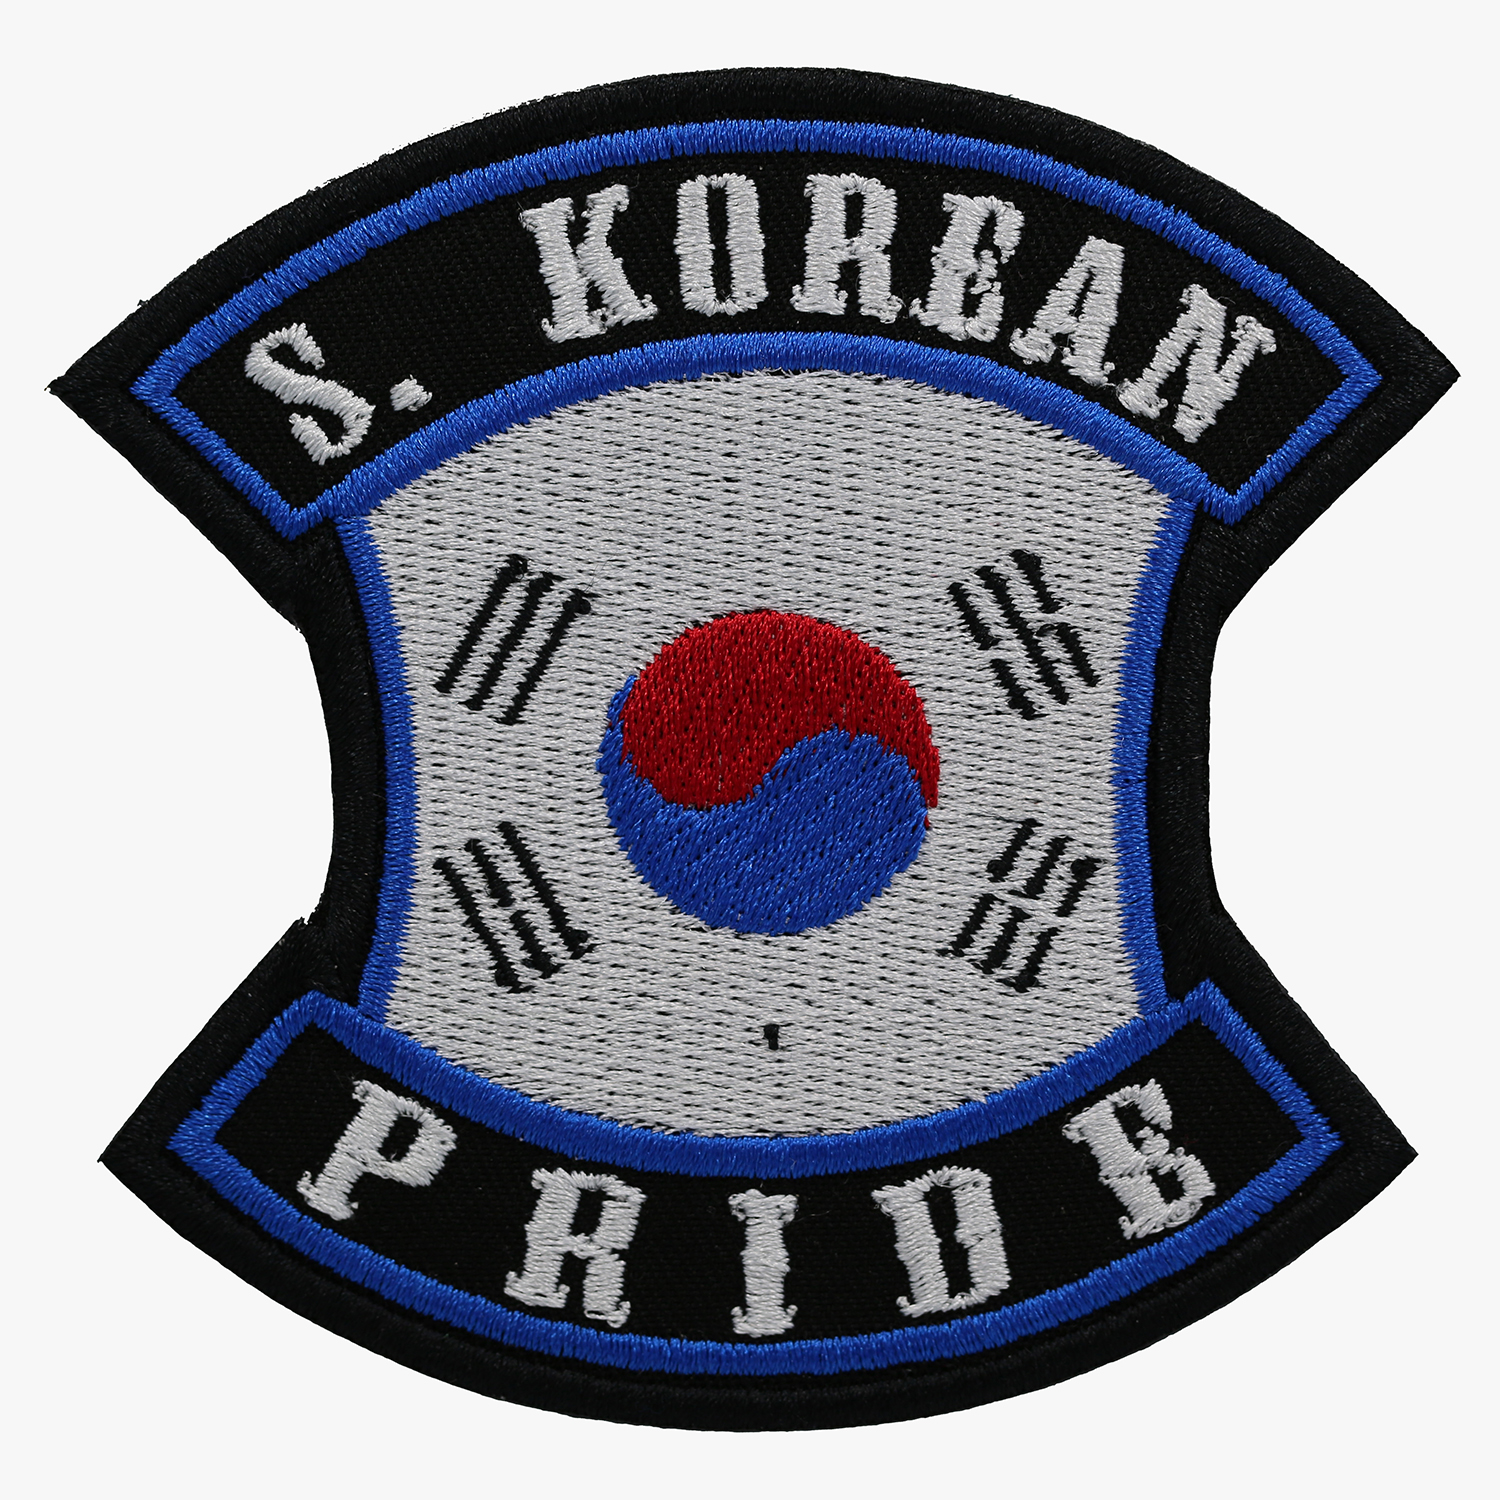 S. KOREAN PRIDE